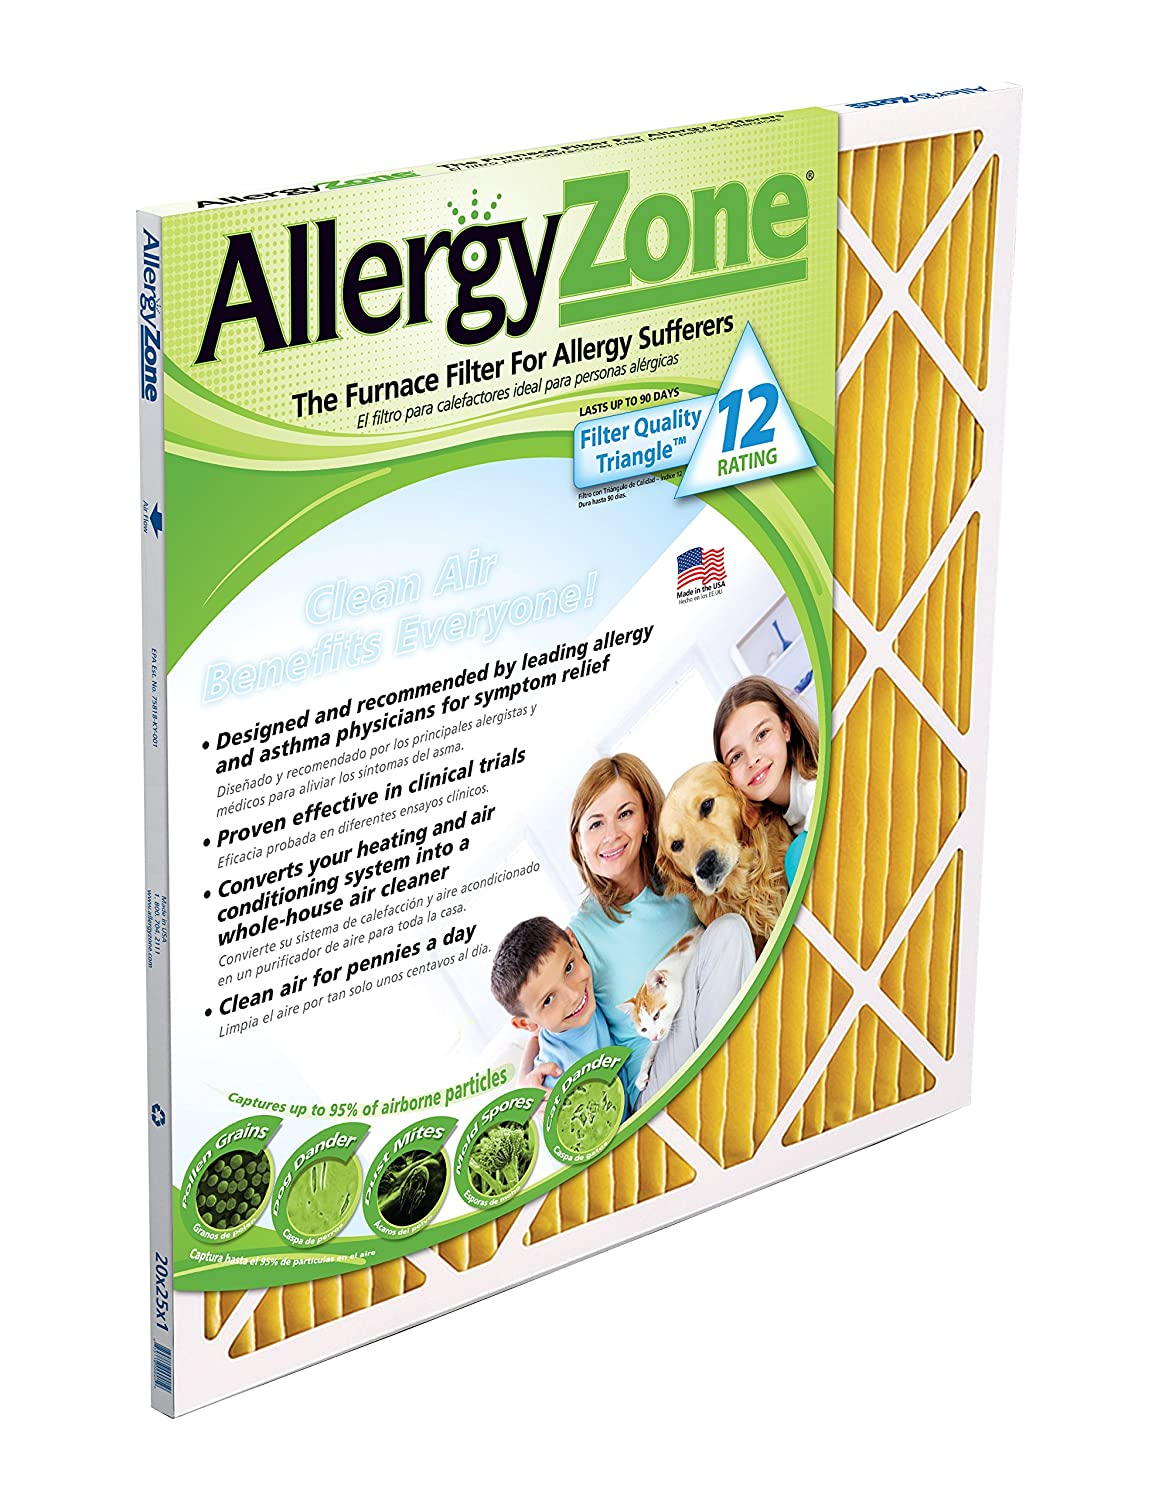 Best furnace air filters for allergies - Amazon Com Allergyzone Az14251 Air Filter For Allergy Sufferers 14 X 25 X 1 Home Kitchen